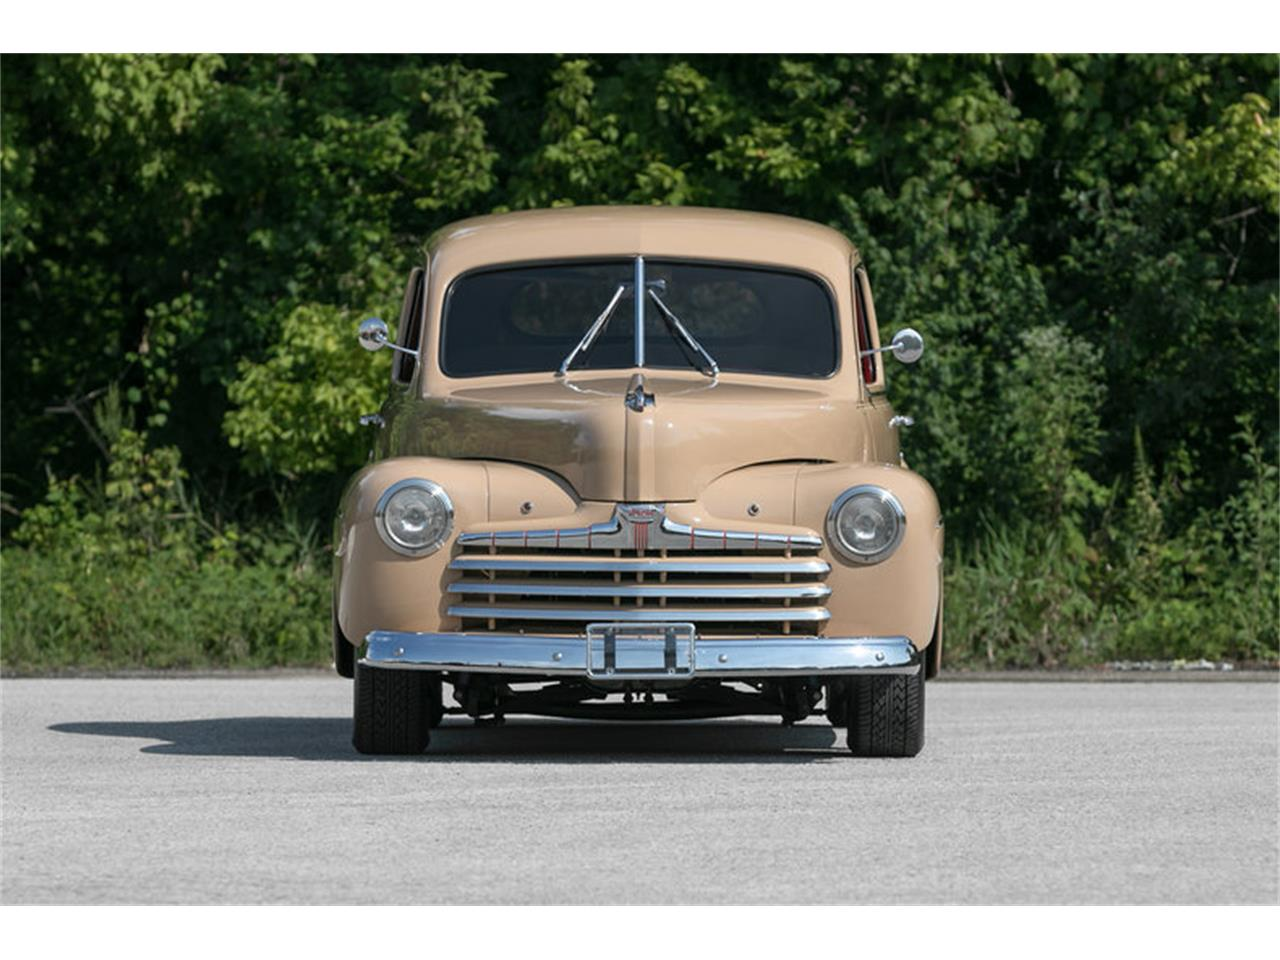 hight resolution of 1946 ford coupe for sale classiccars com cc 1136953 1946 ford truck wiring 1946 ford coupe wiring harness